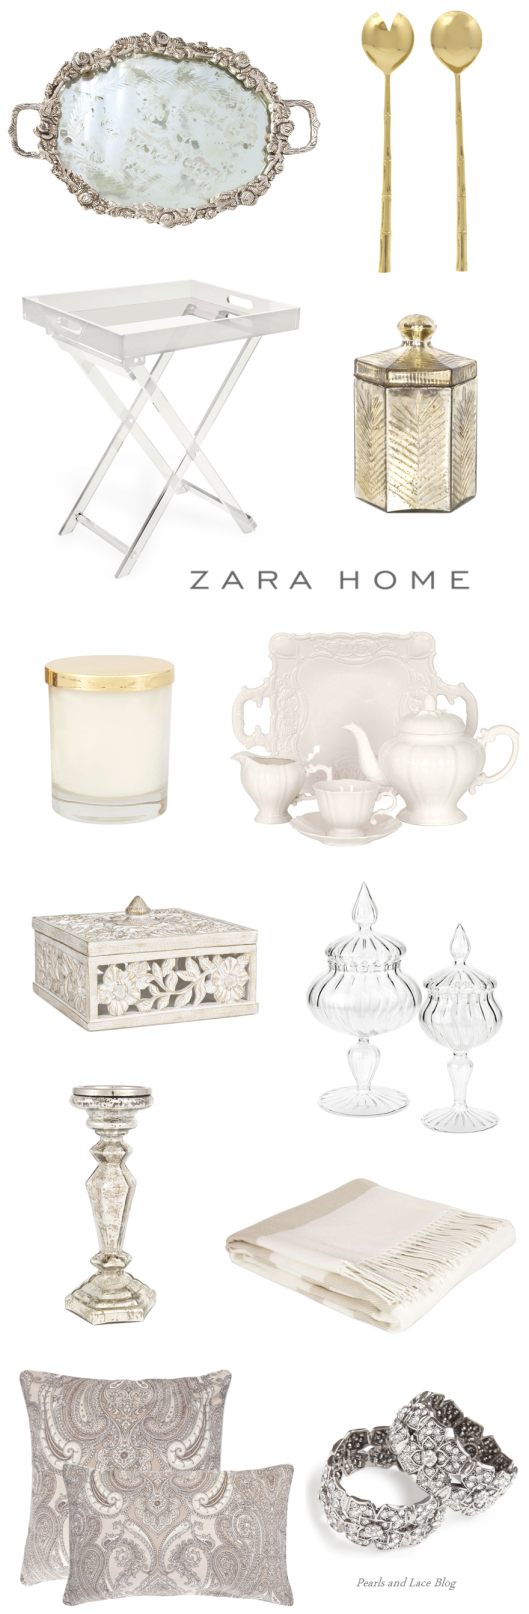 Zara Home by Pearls and Lace... absolutely loving Zara home ...